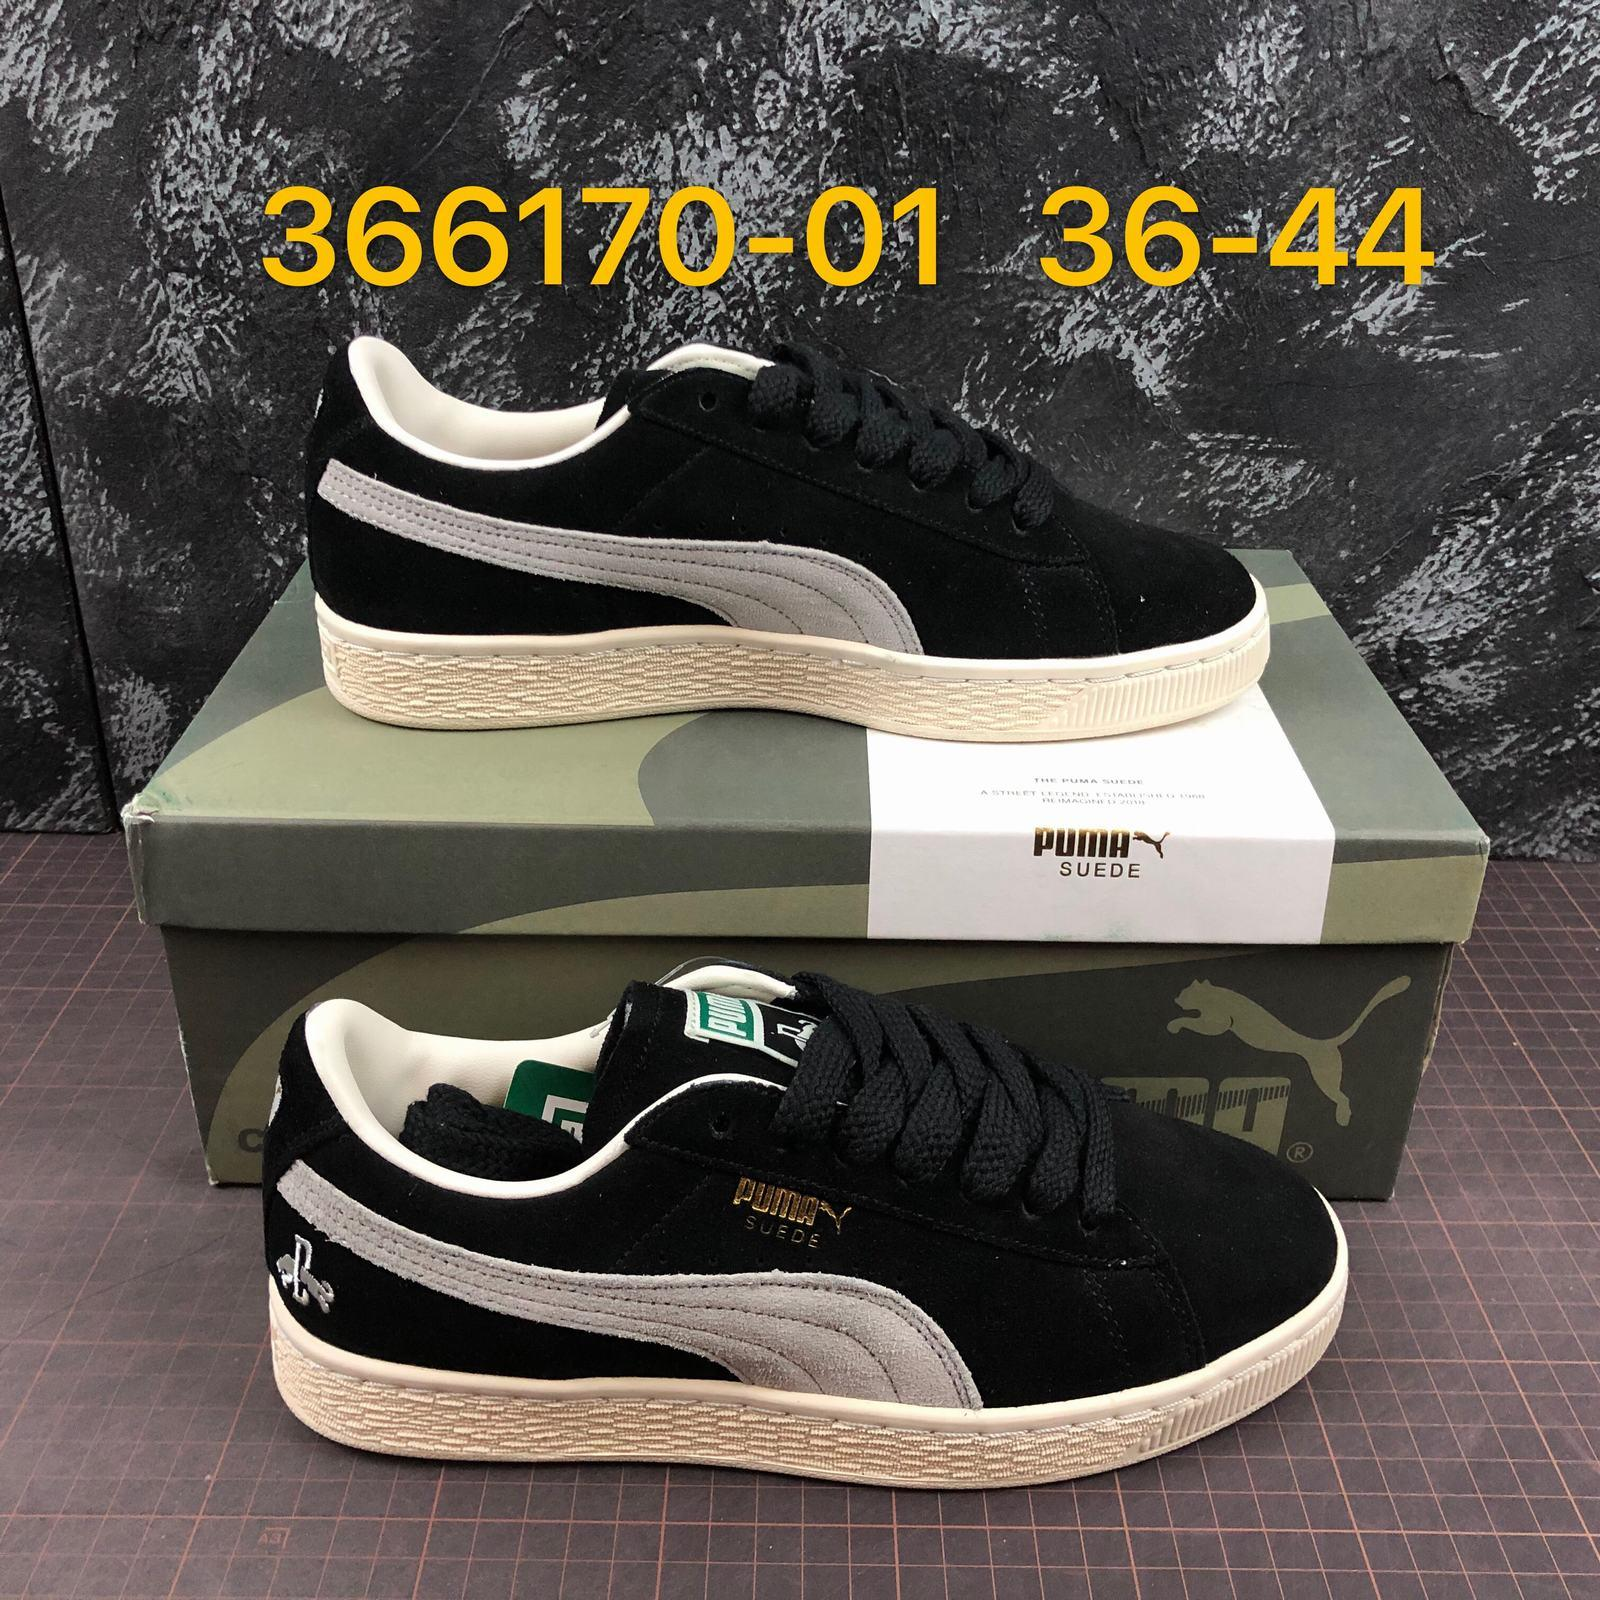 2019 New Model Shoes PUMA X CAREAUX BASKET Basket For Women Hot Sale Puma Shoes